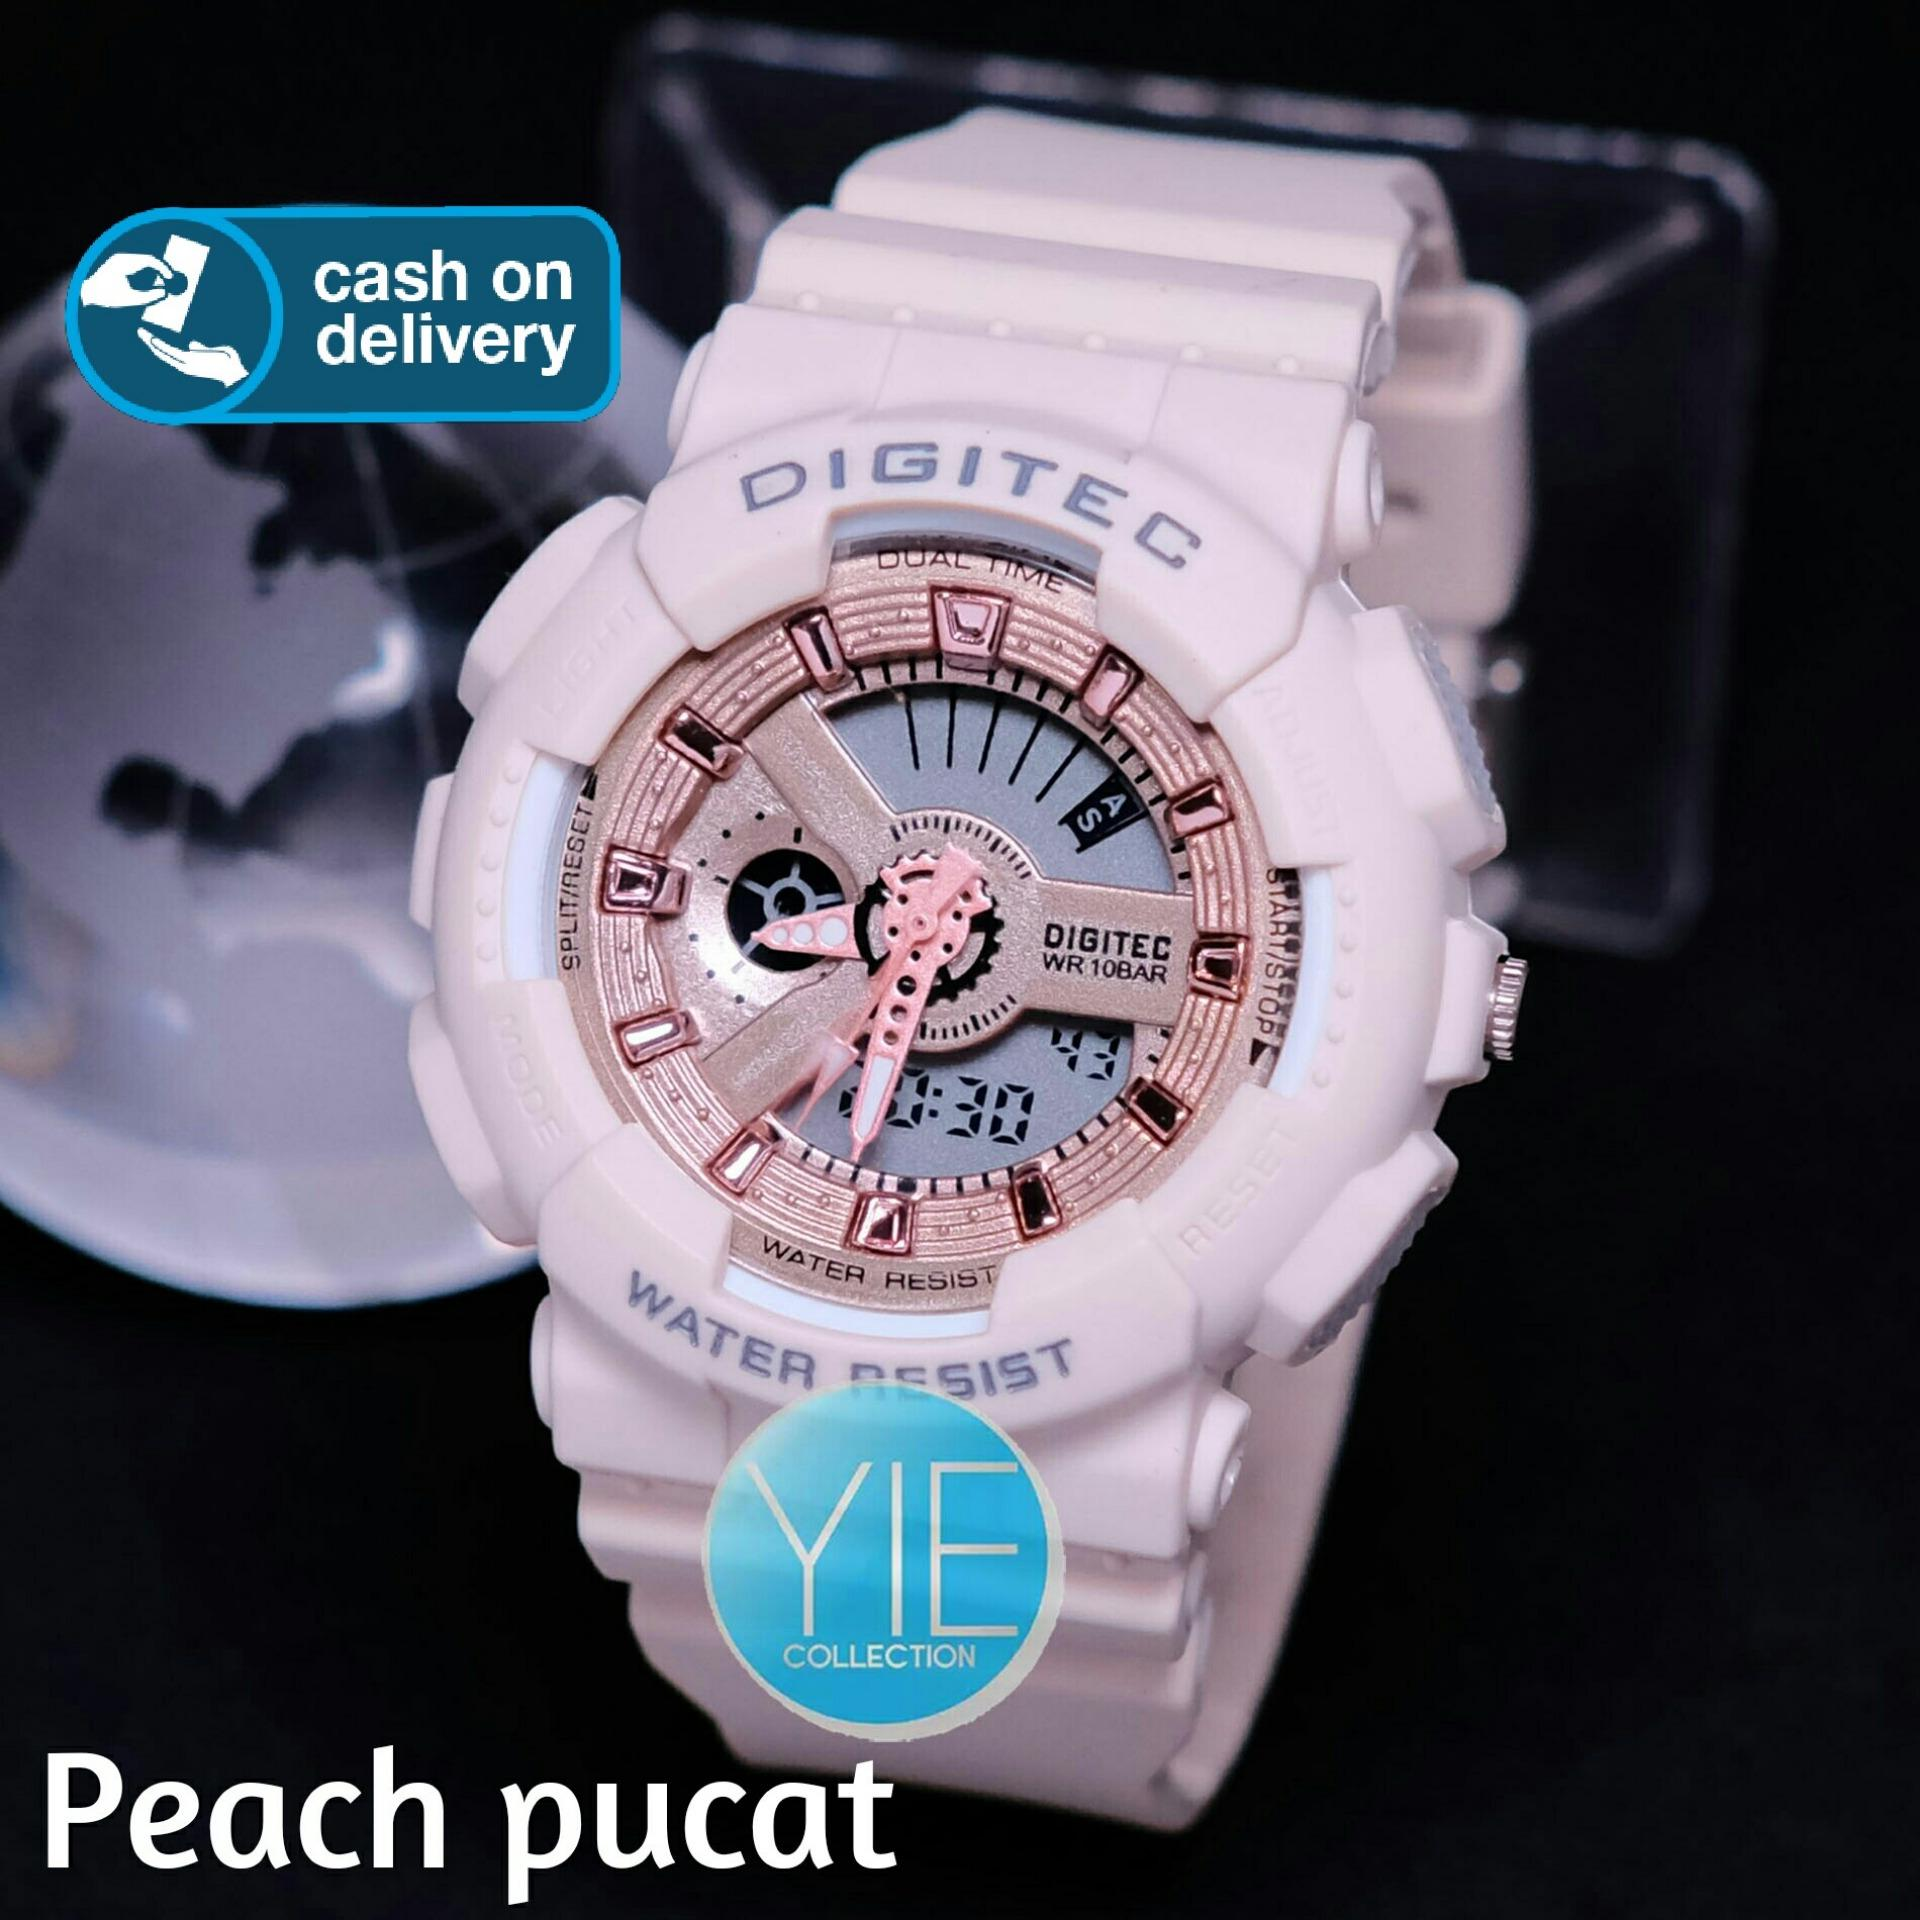 [COD] Digitec Jam Tangan Wanita DG 2063 Dual Time Strap Karet Original Anti Air